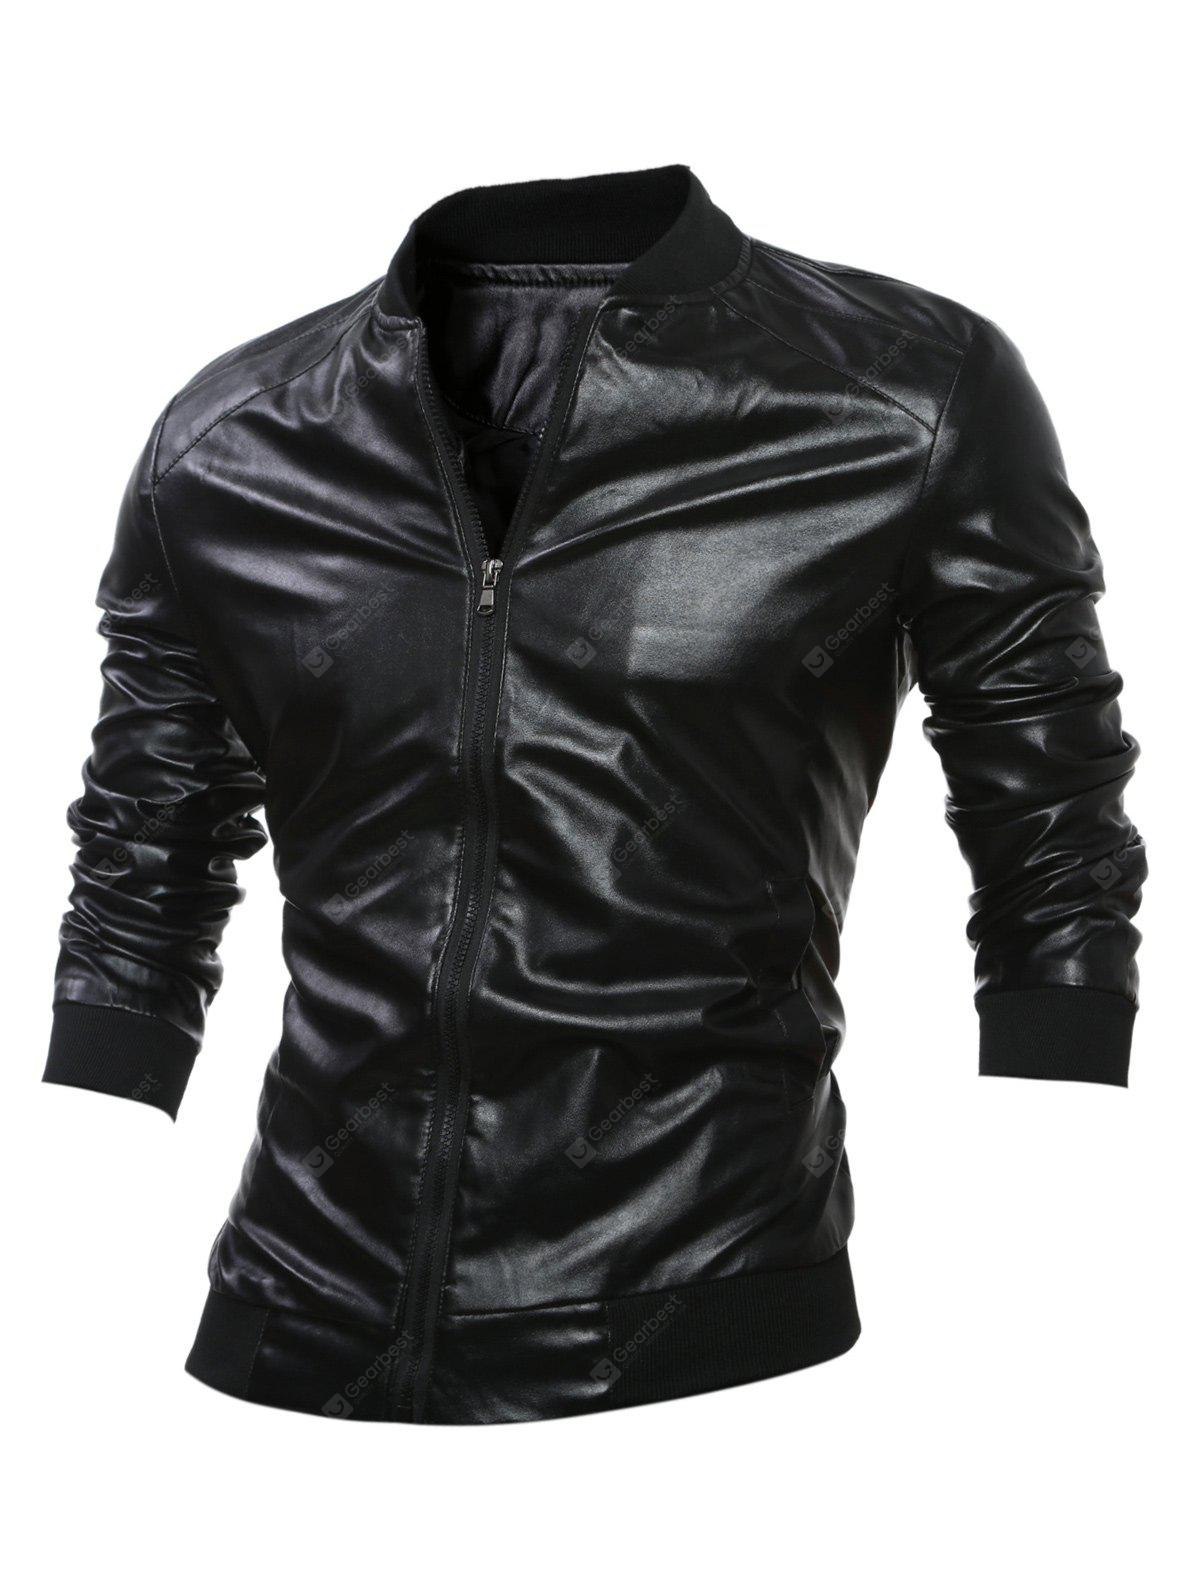 Stand Yaka Kaburga-Hem Zip Up Faux Leather Jacket